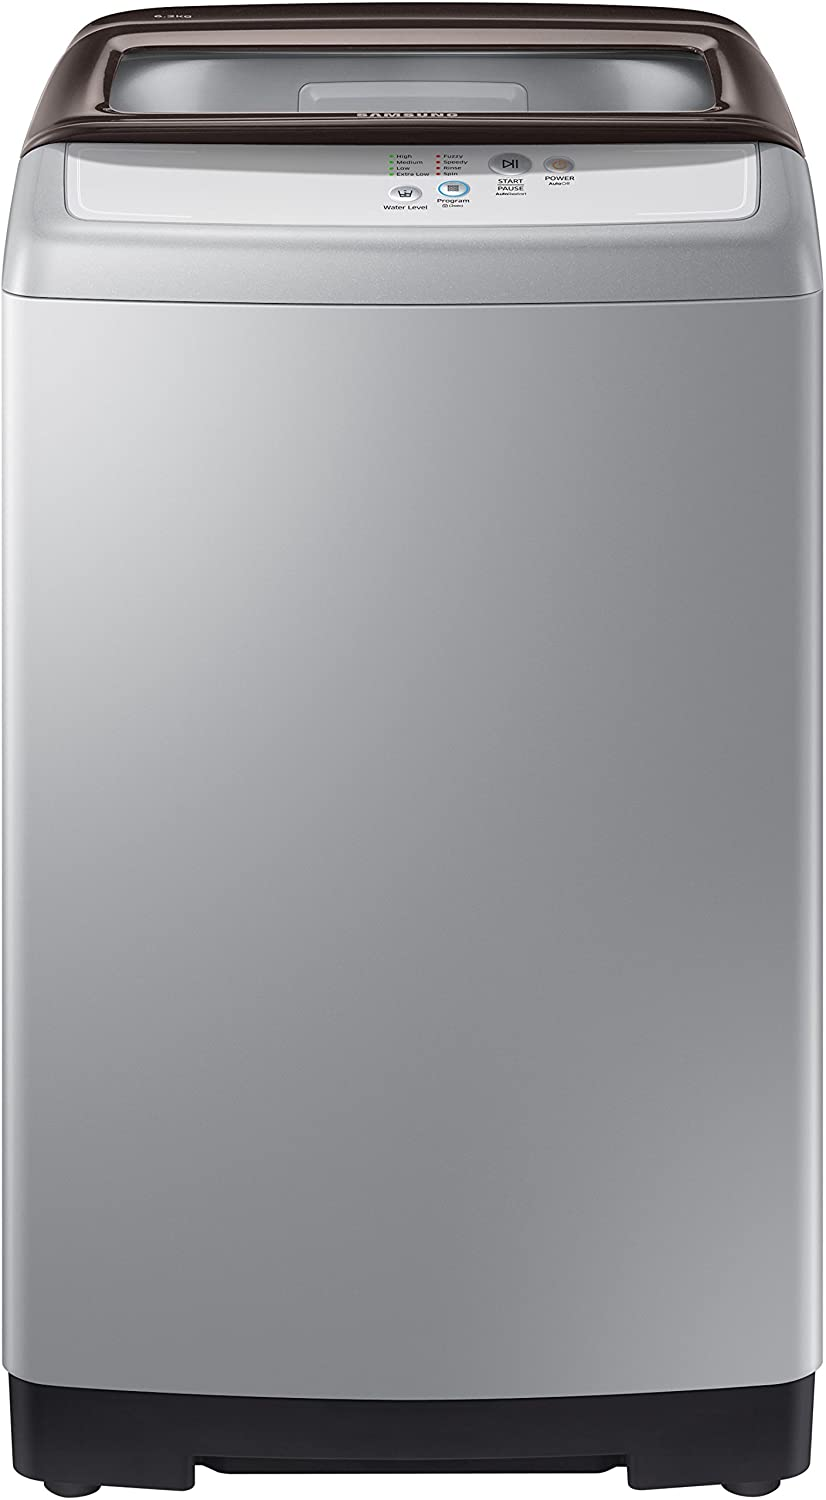 Samsung 6.2 kg Fully-Automatic Top Loading Washing Machine